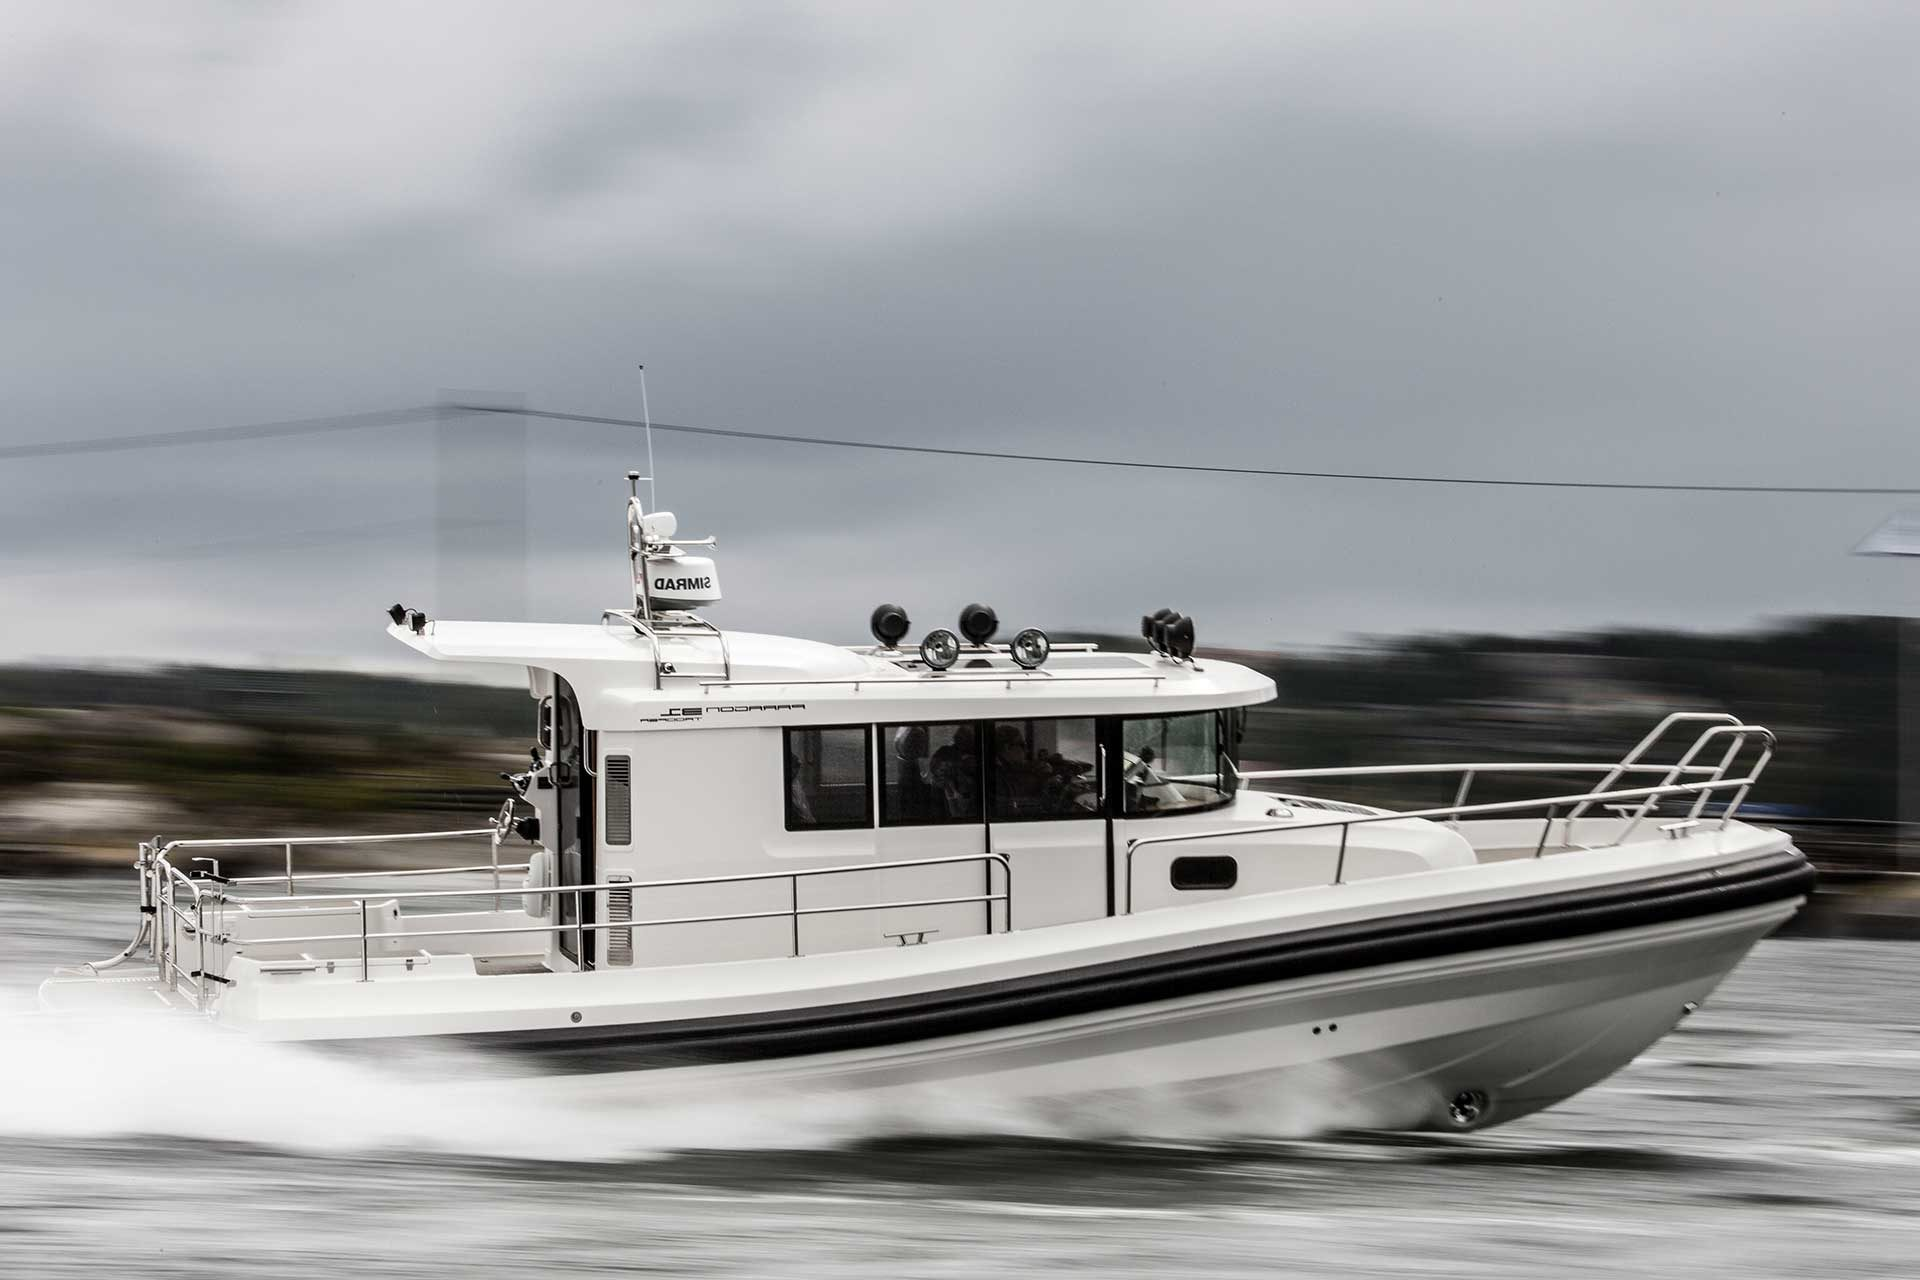 A Paragon 31 is driving on the sea